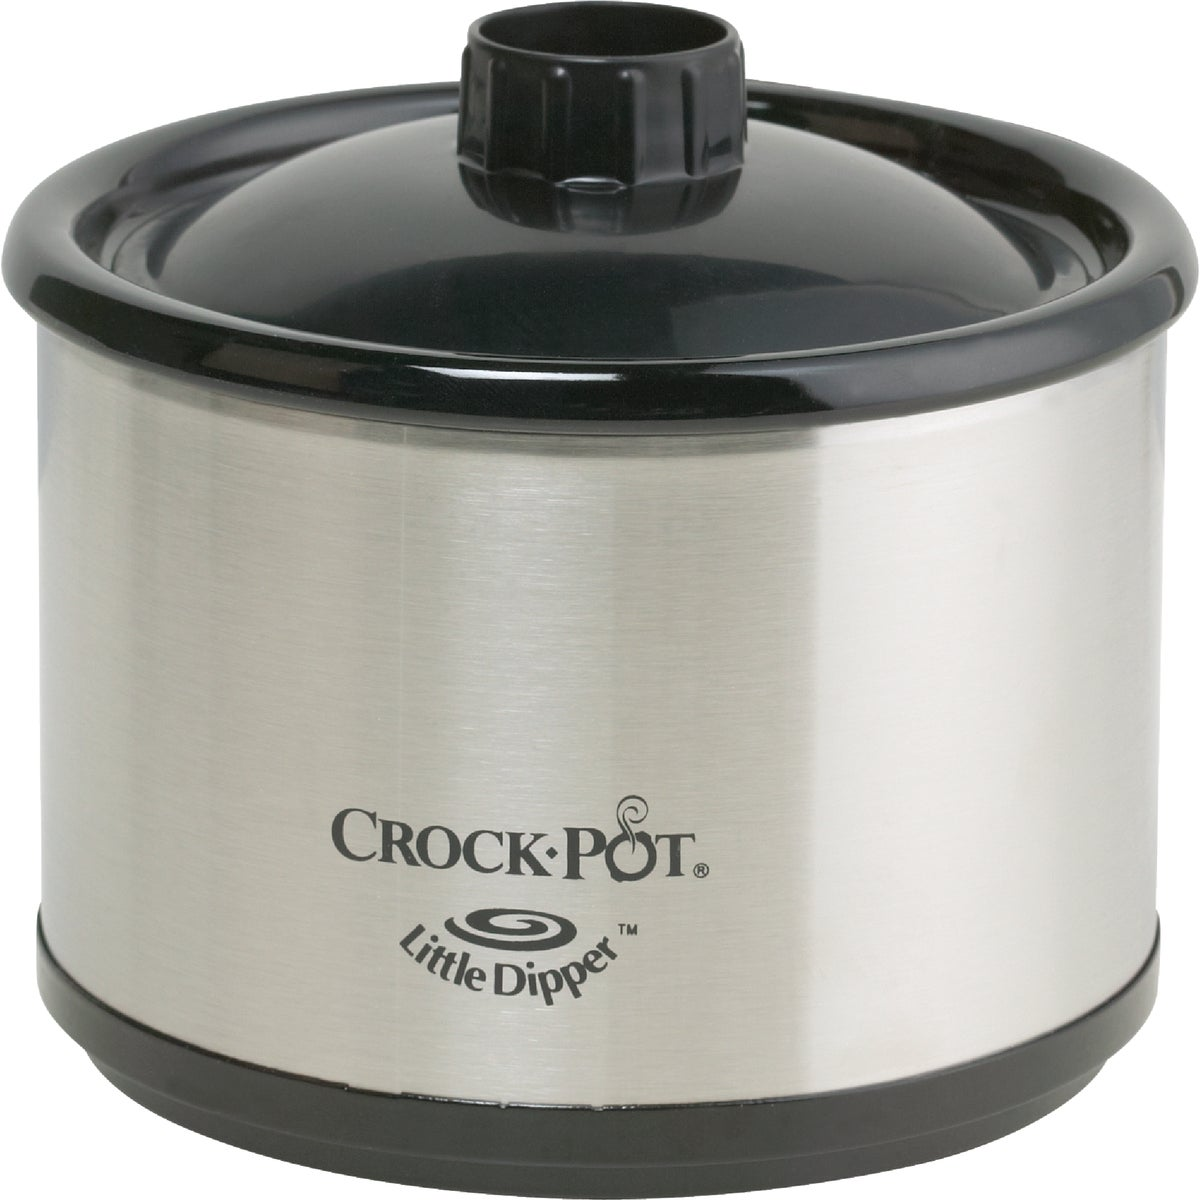 16OZ CROCKPT SLOW COOKER - 32041-C-NP by Jarden Cs